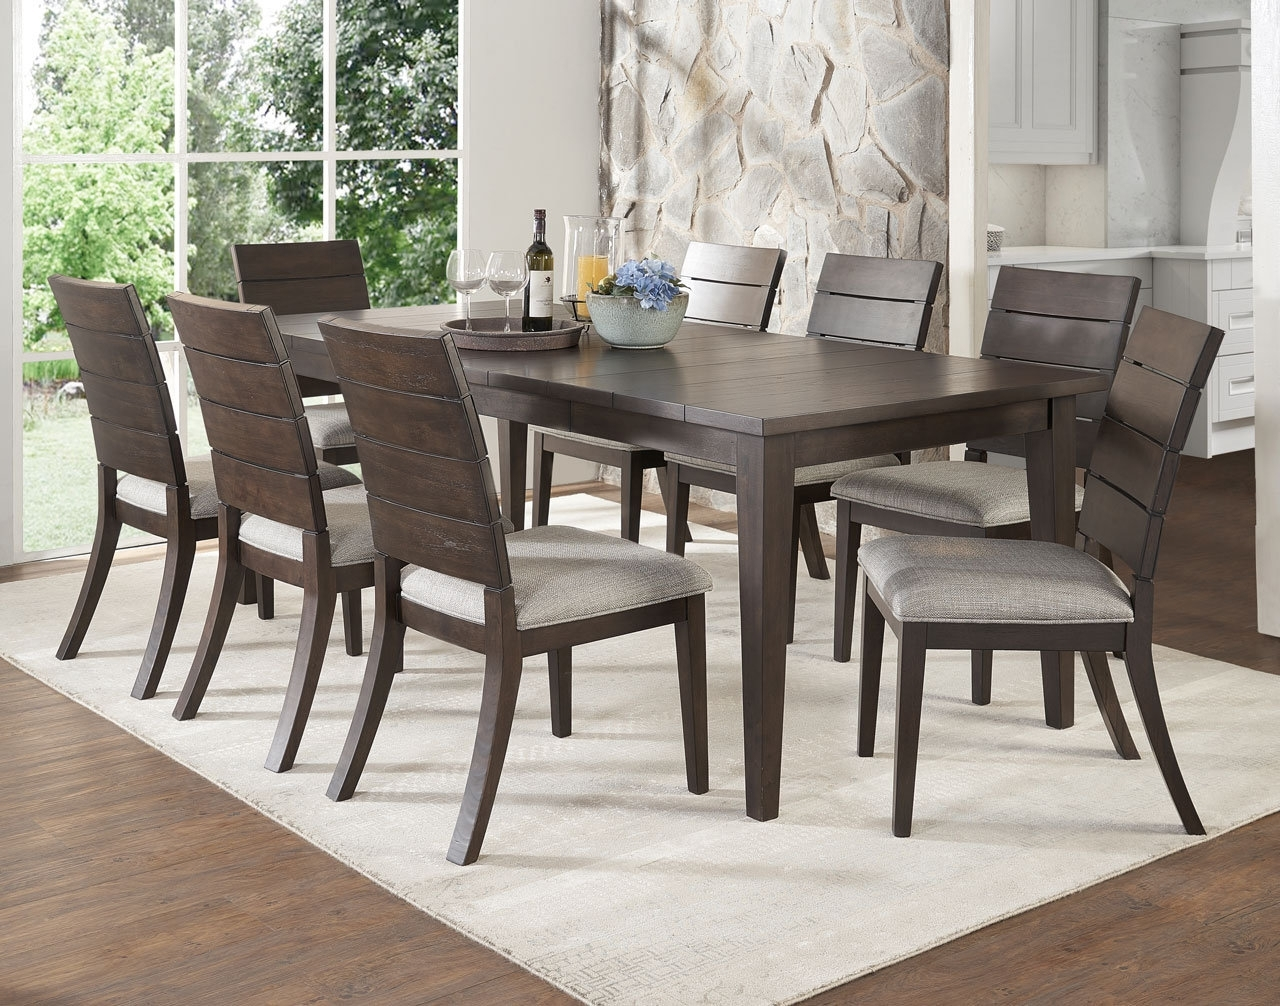 Wayfair With Regard To 2017 Extendable Dining Table Sets (View 5 of 25)